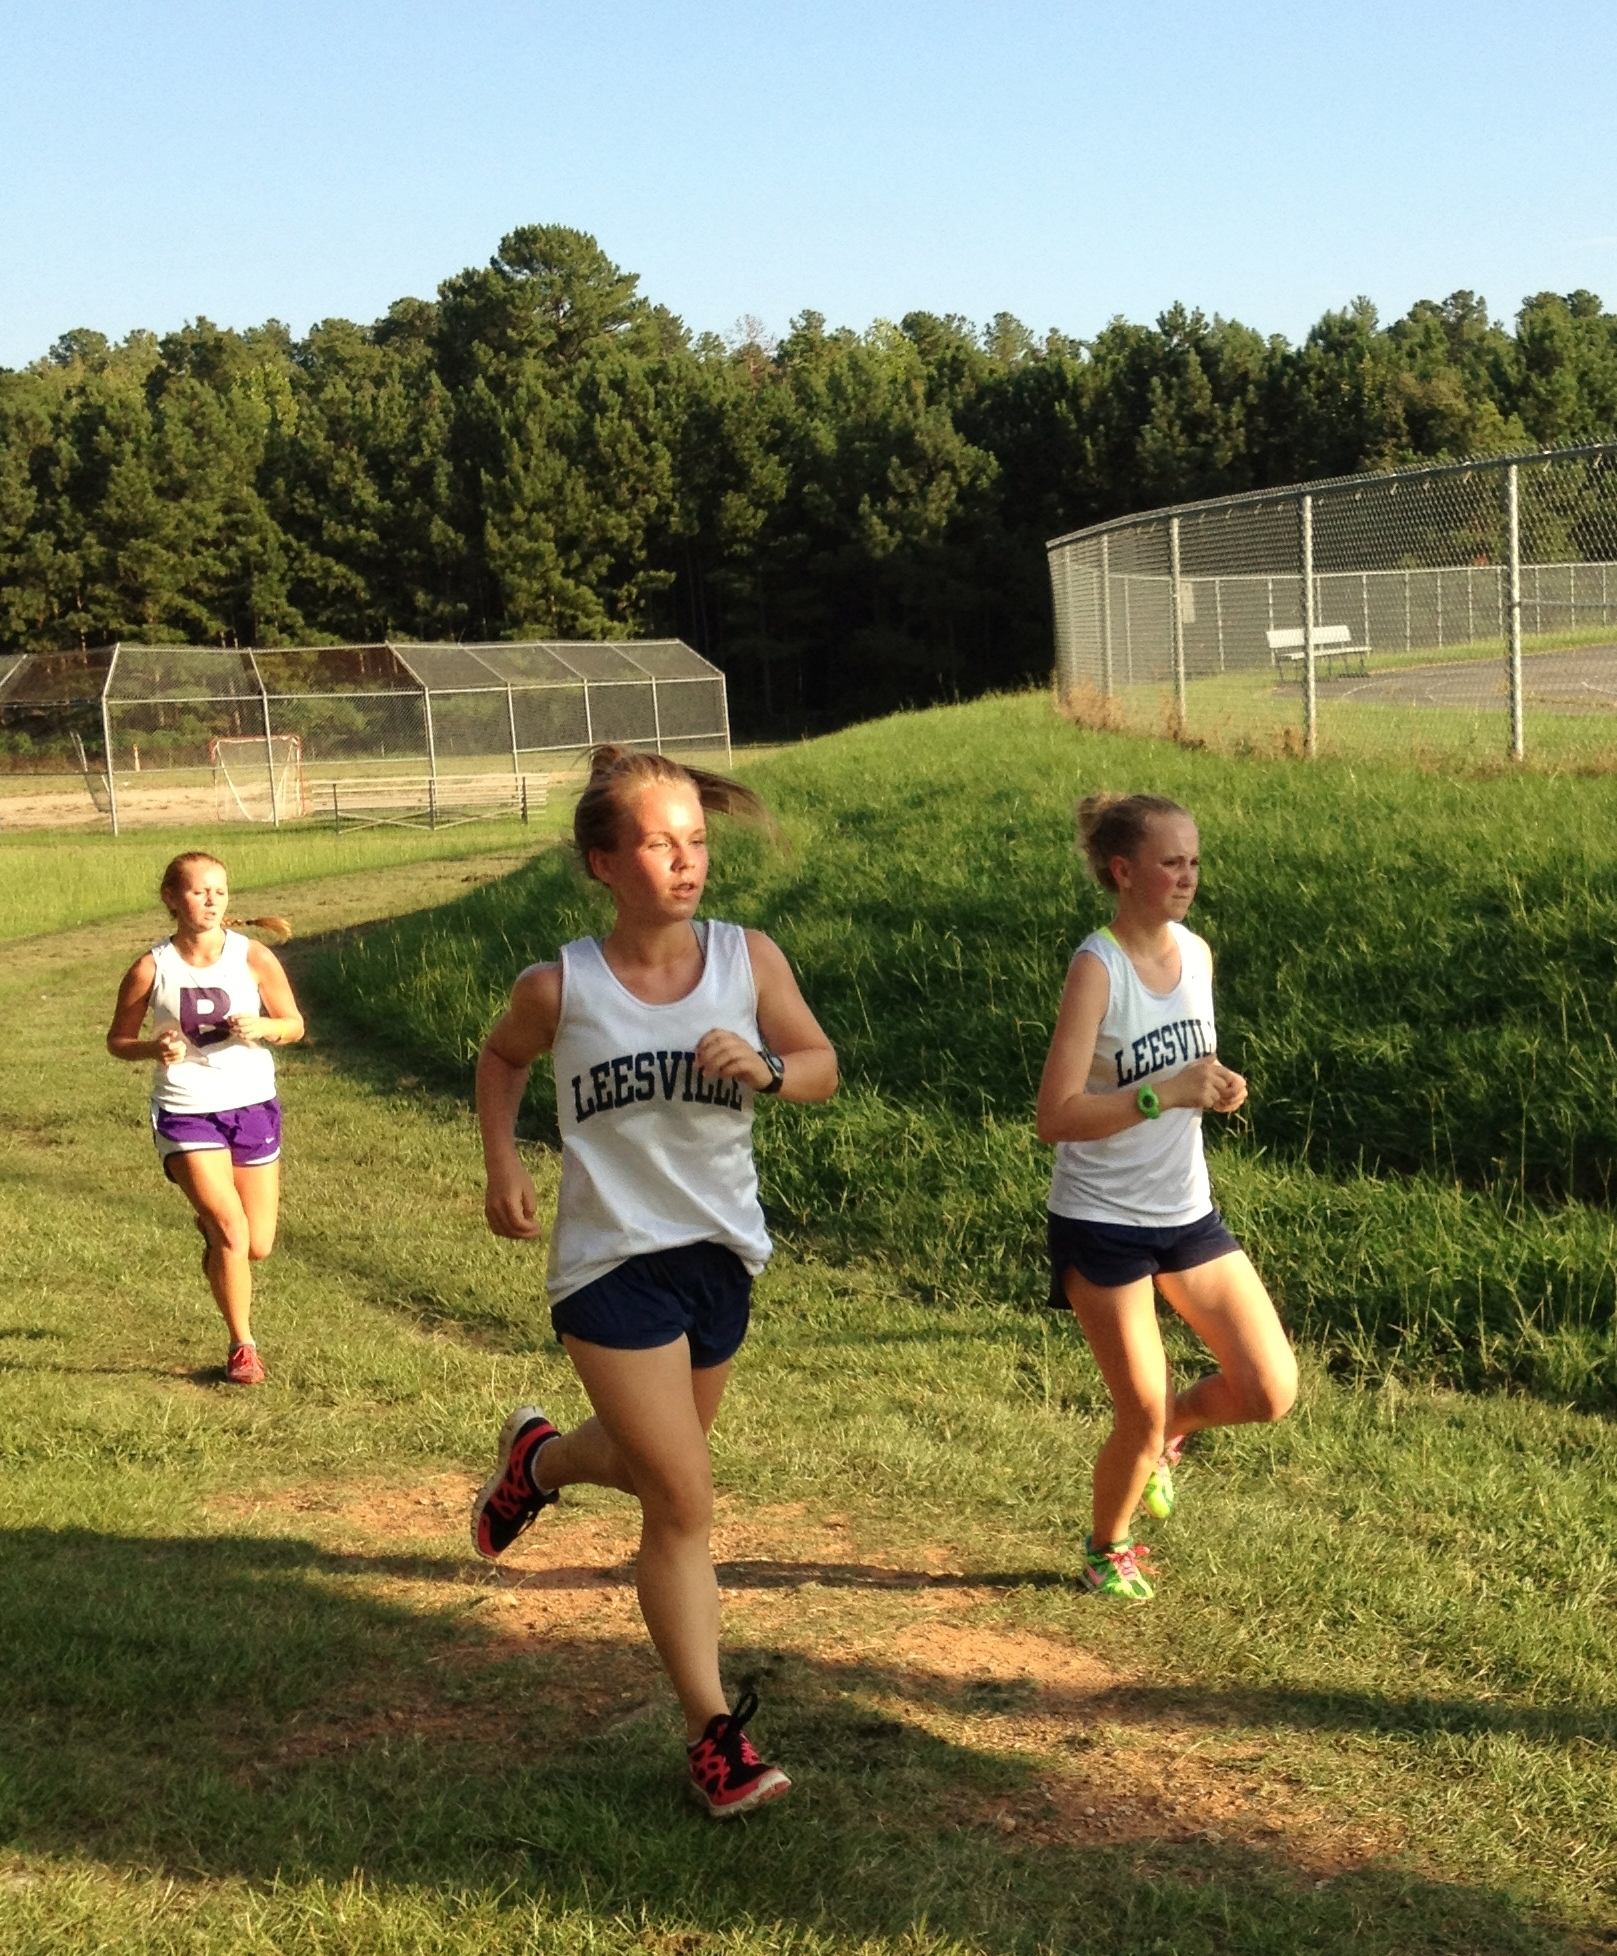 Abby Tarnowski (center), sophomore, and Jessica Merdes (right), senior, race to the finish in a Leesville cross country meet against Broughton. Tarnowski and Merdes were both happy with their races.